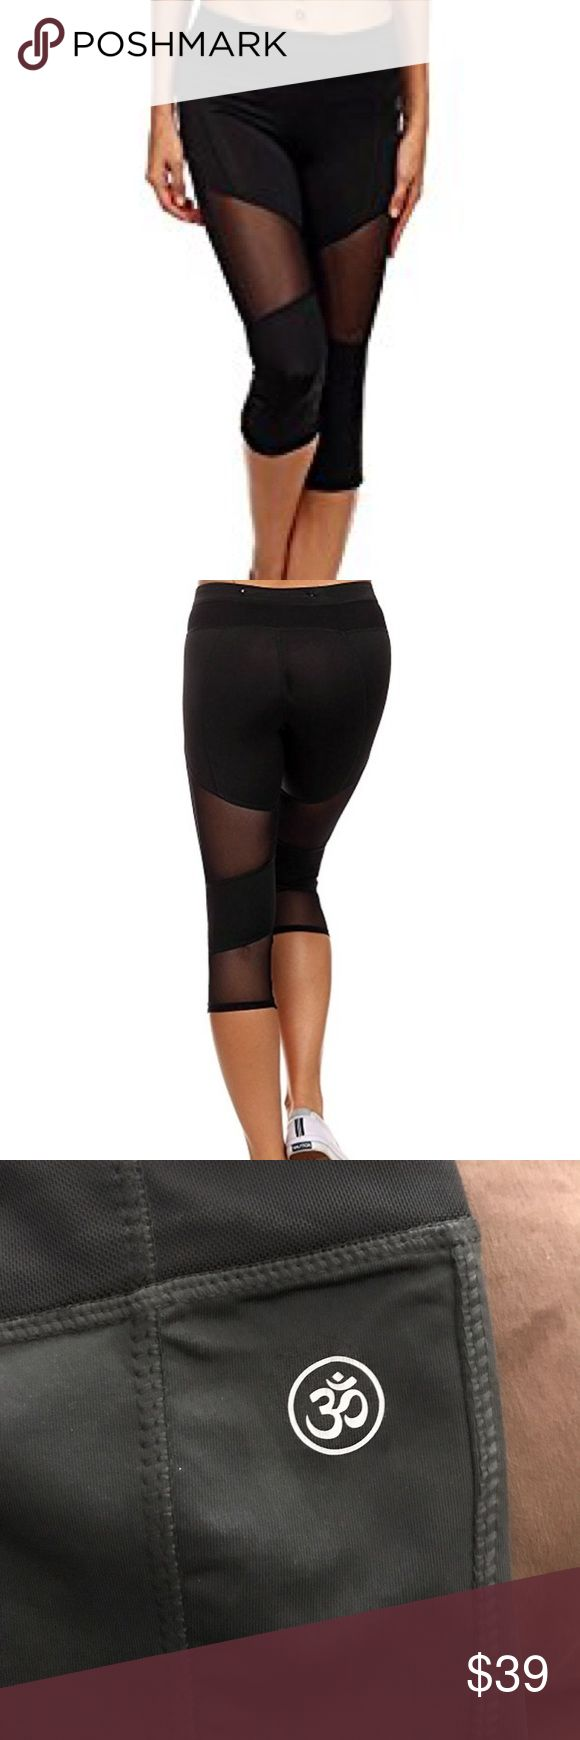 LA Society Mesh Cropped Ohm Yoga Pants Small This is a pair of LA Society Mesh Yoga Pants. Size small.  87% Polyester 13% Elastane new never worn.  Back-Zipper Pocket In Waistband Elasticized waistband Machine Washable 4-Way stretch material provides mobility for training and leisure activities. LA Society Pants Leggings